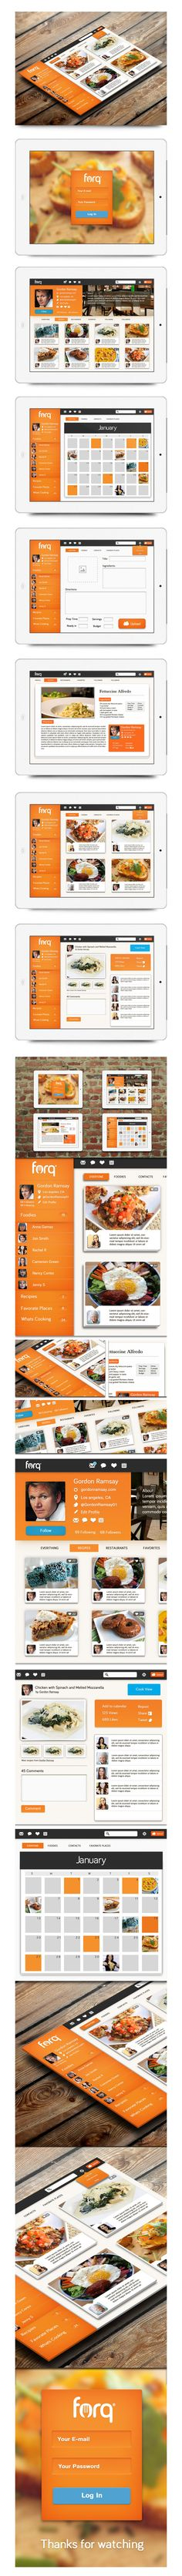 FORQ - Food Network App by Isaac Sanchez, via Behance *** Forq is a social network for foodies. Social networks already exist, and so do recipe and food sites, but not the cross-over. Forq will be the coolest mobile app (phone tablet) for foodies that wa Interface Web, User Interface Design, Mobile Ui Design, App Ui Design, Tablet Ui, Design Digital, Mobile App Ui, Ui Design Inspiration, Ui Web